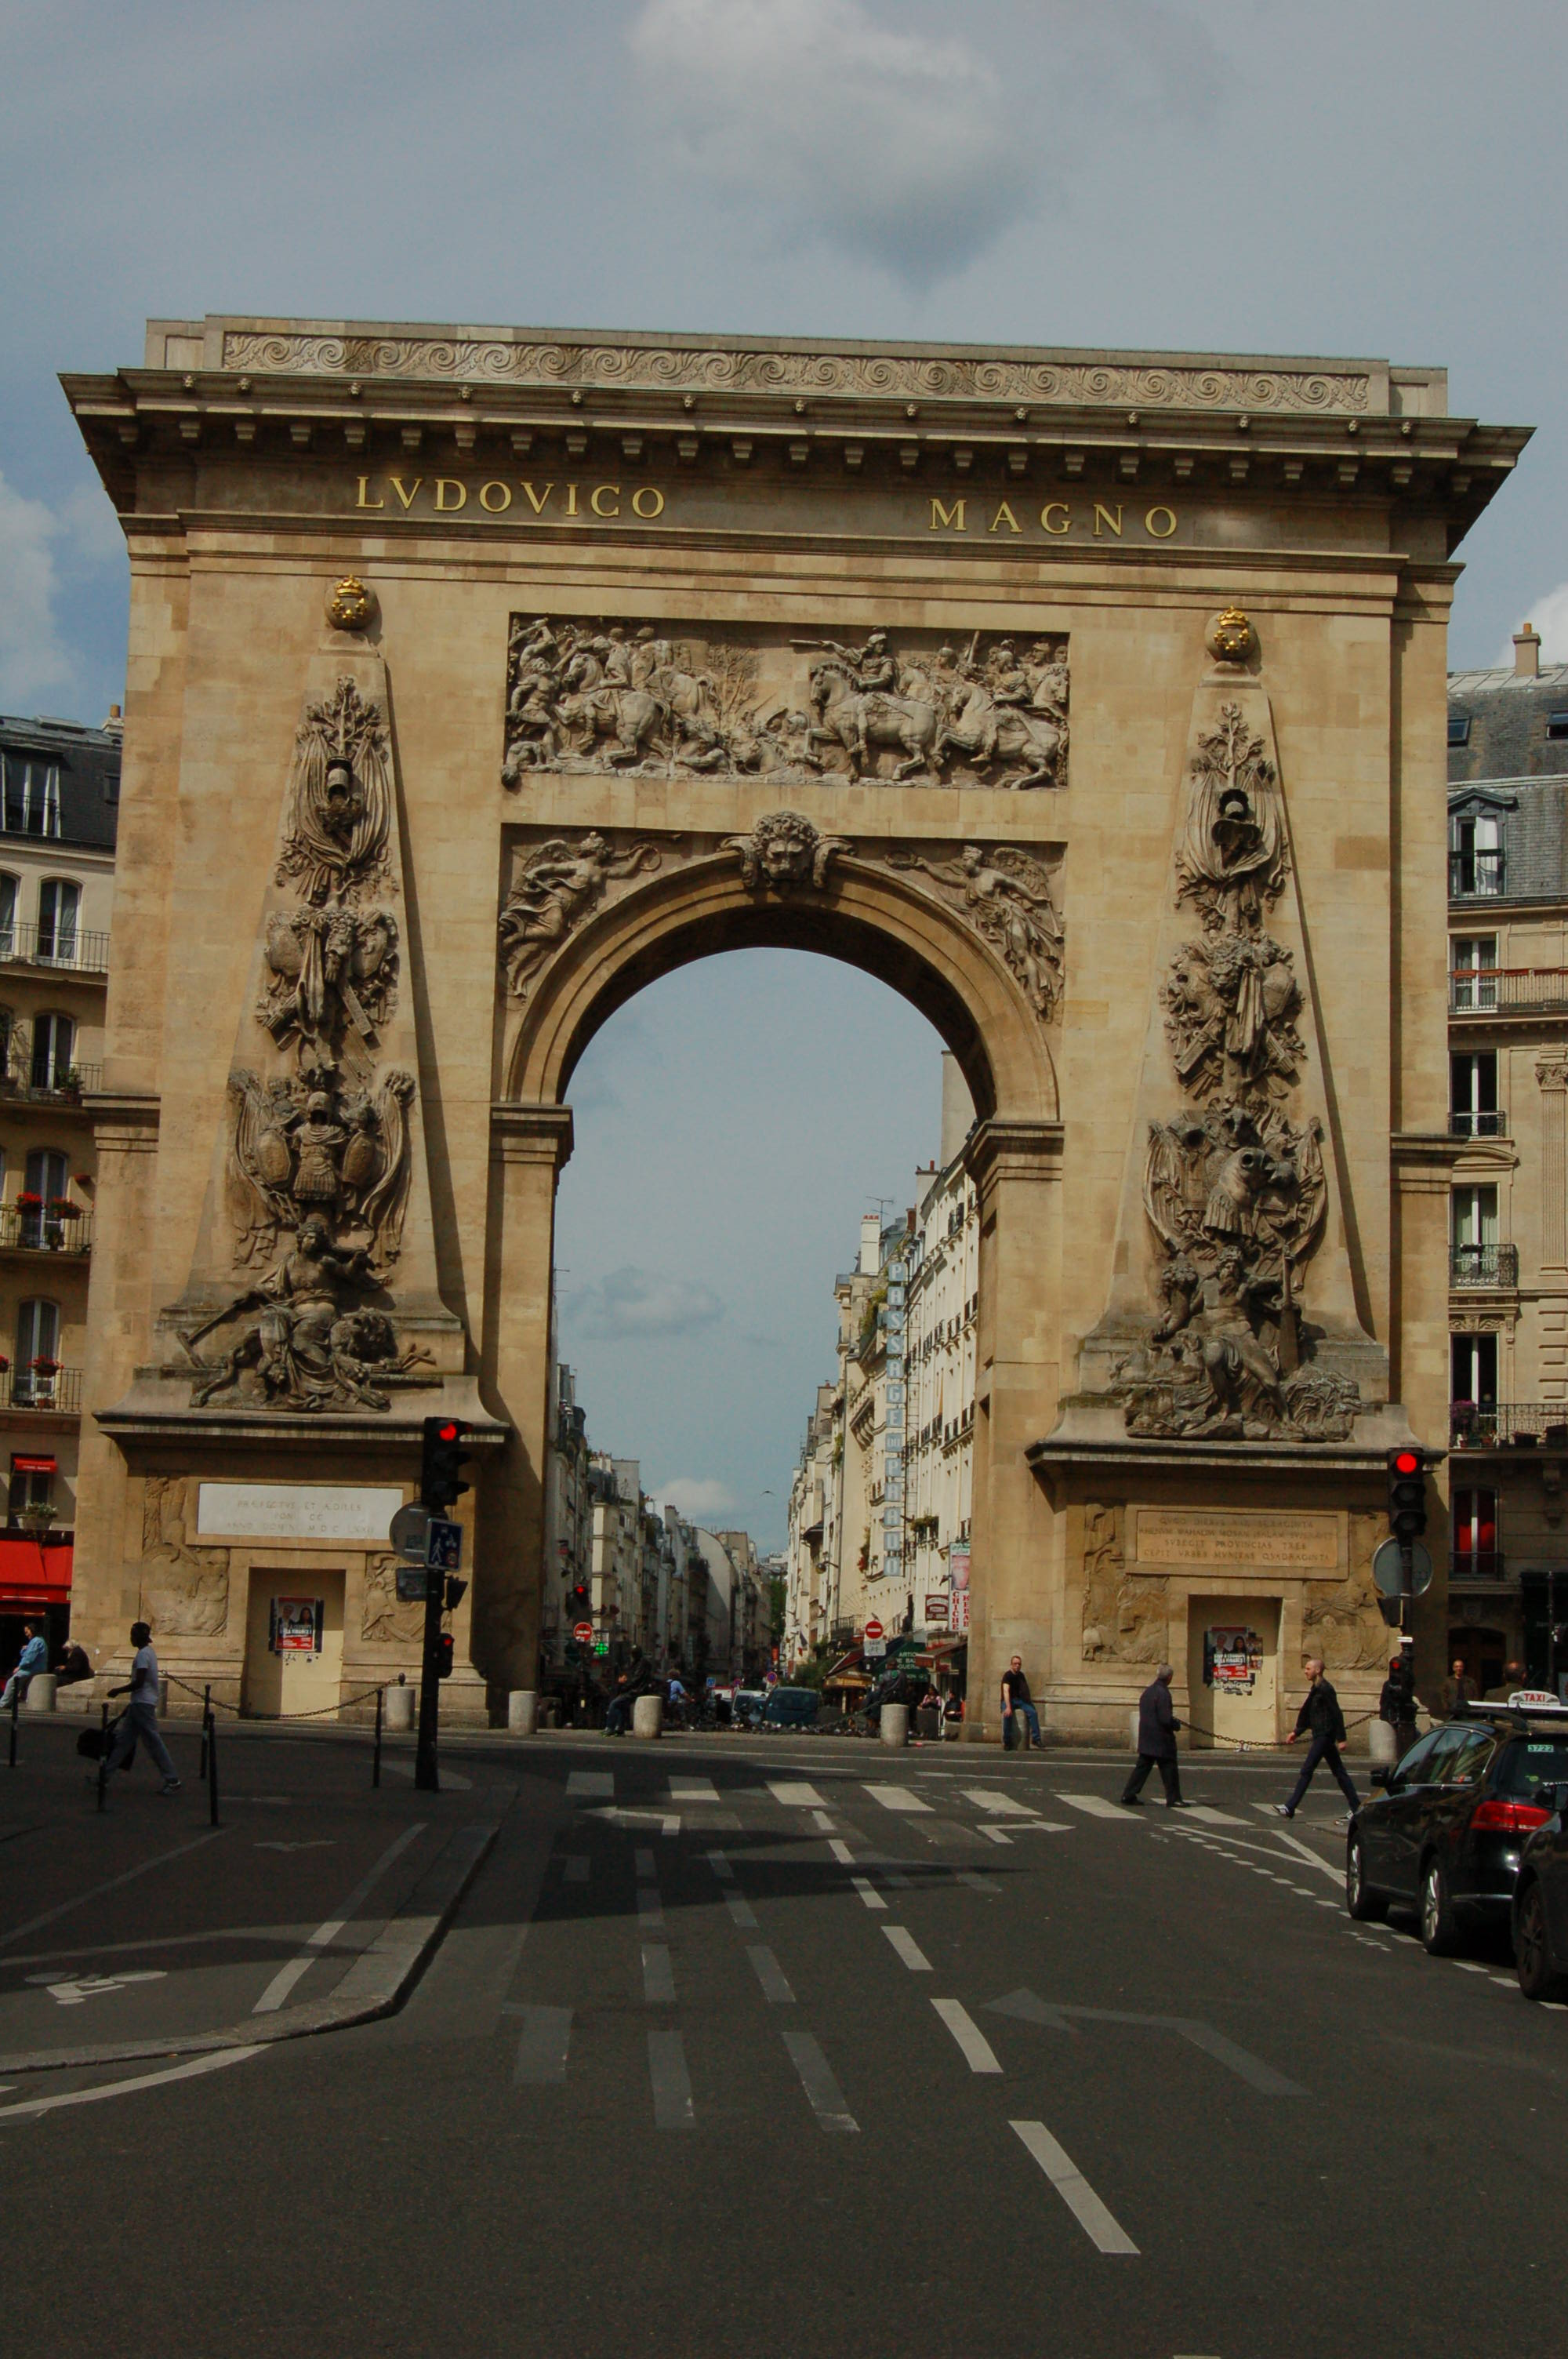 A Small Arch in Plaza St. Denis